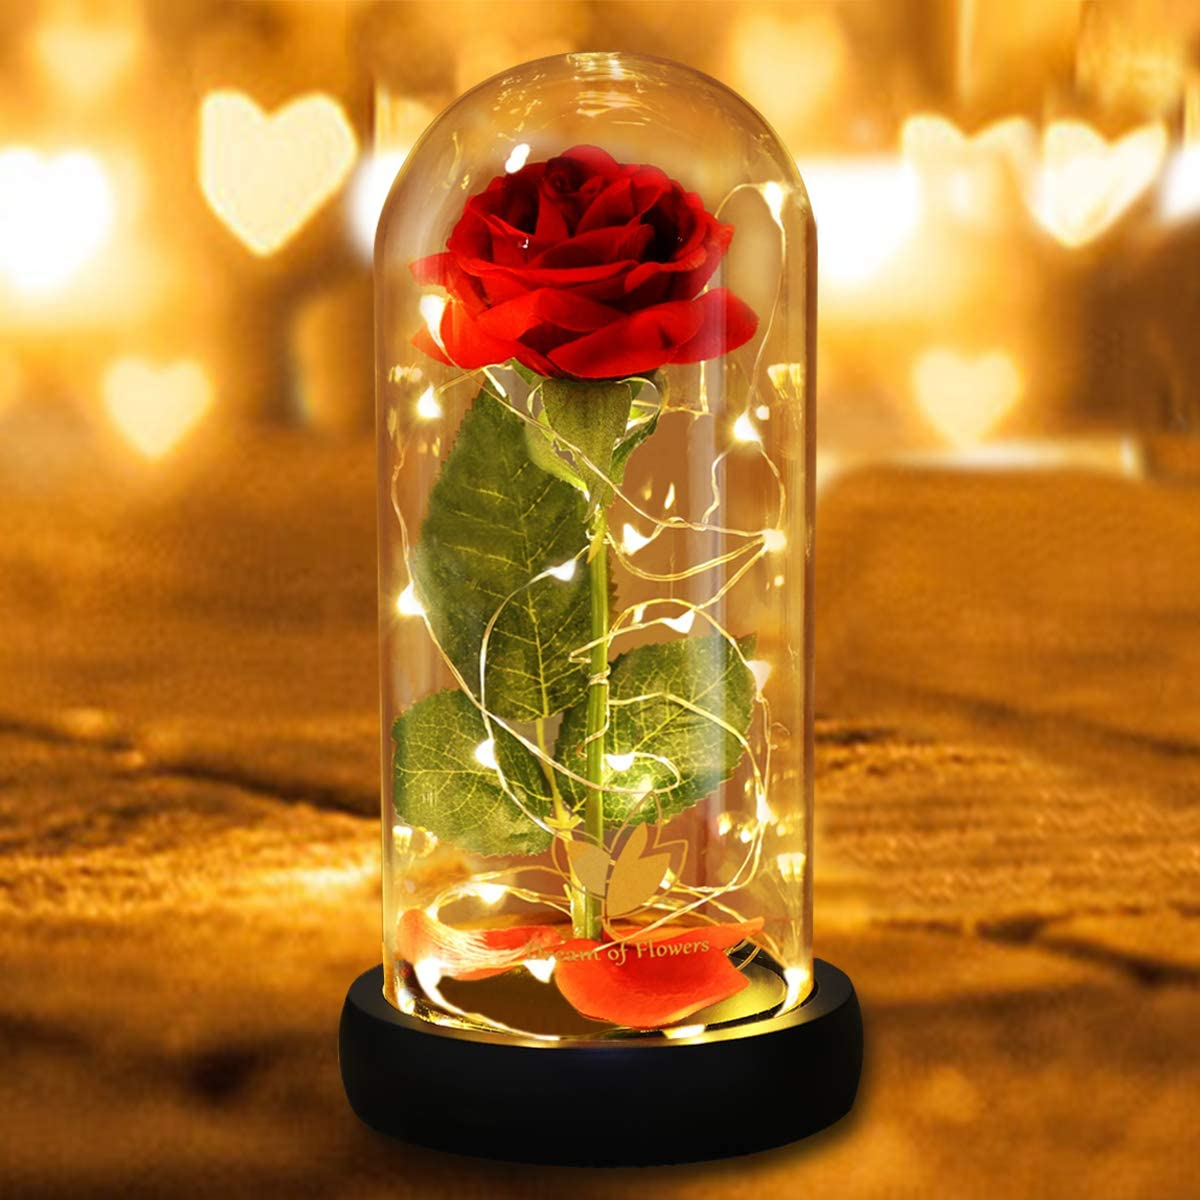 Beauty and The Beast Rose Set - Romantic surprise for Christmas &Valentine's Day & OtherFestivals, Beautifully Decorated With Red Silk Roses, LED Lights and Dome Glass and Wooden Base